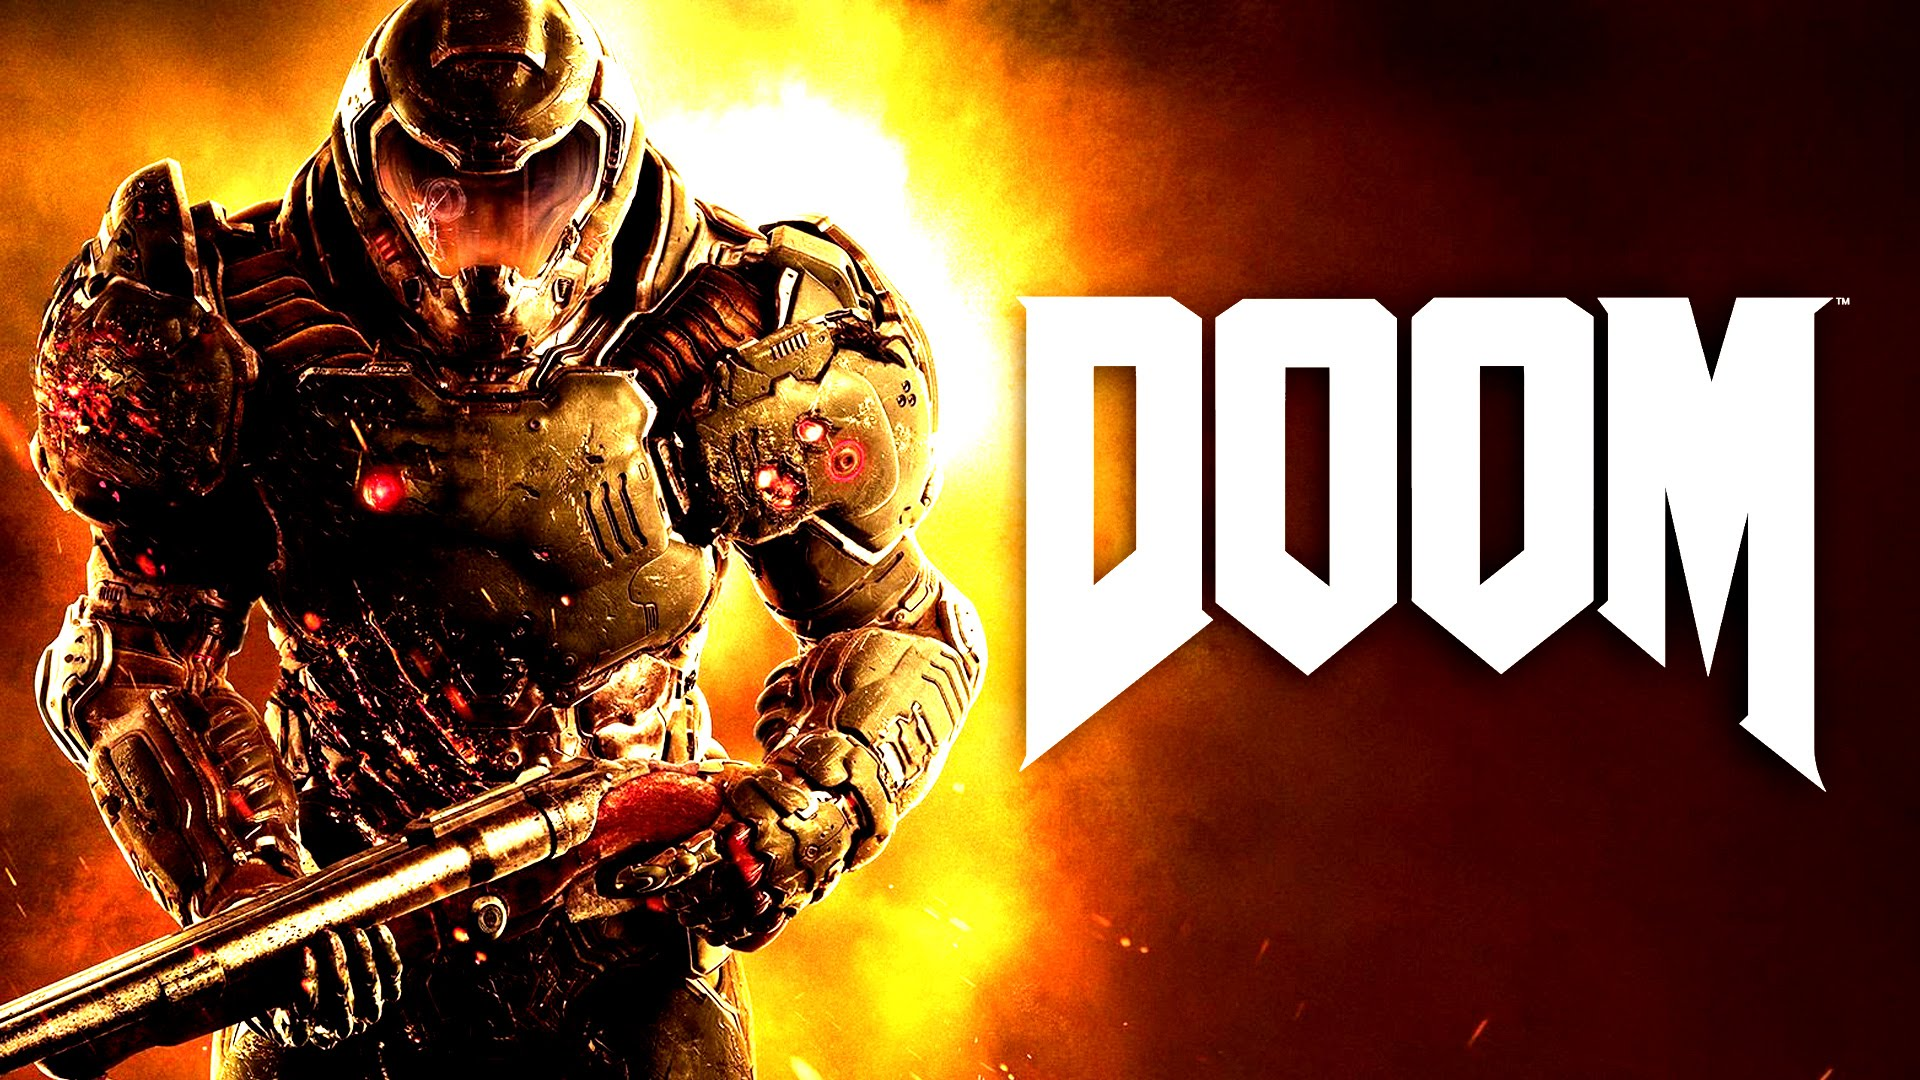 Digital Foundry Hands-On With DOOM For Nintendo Switch